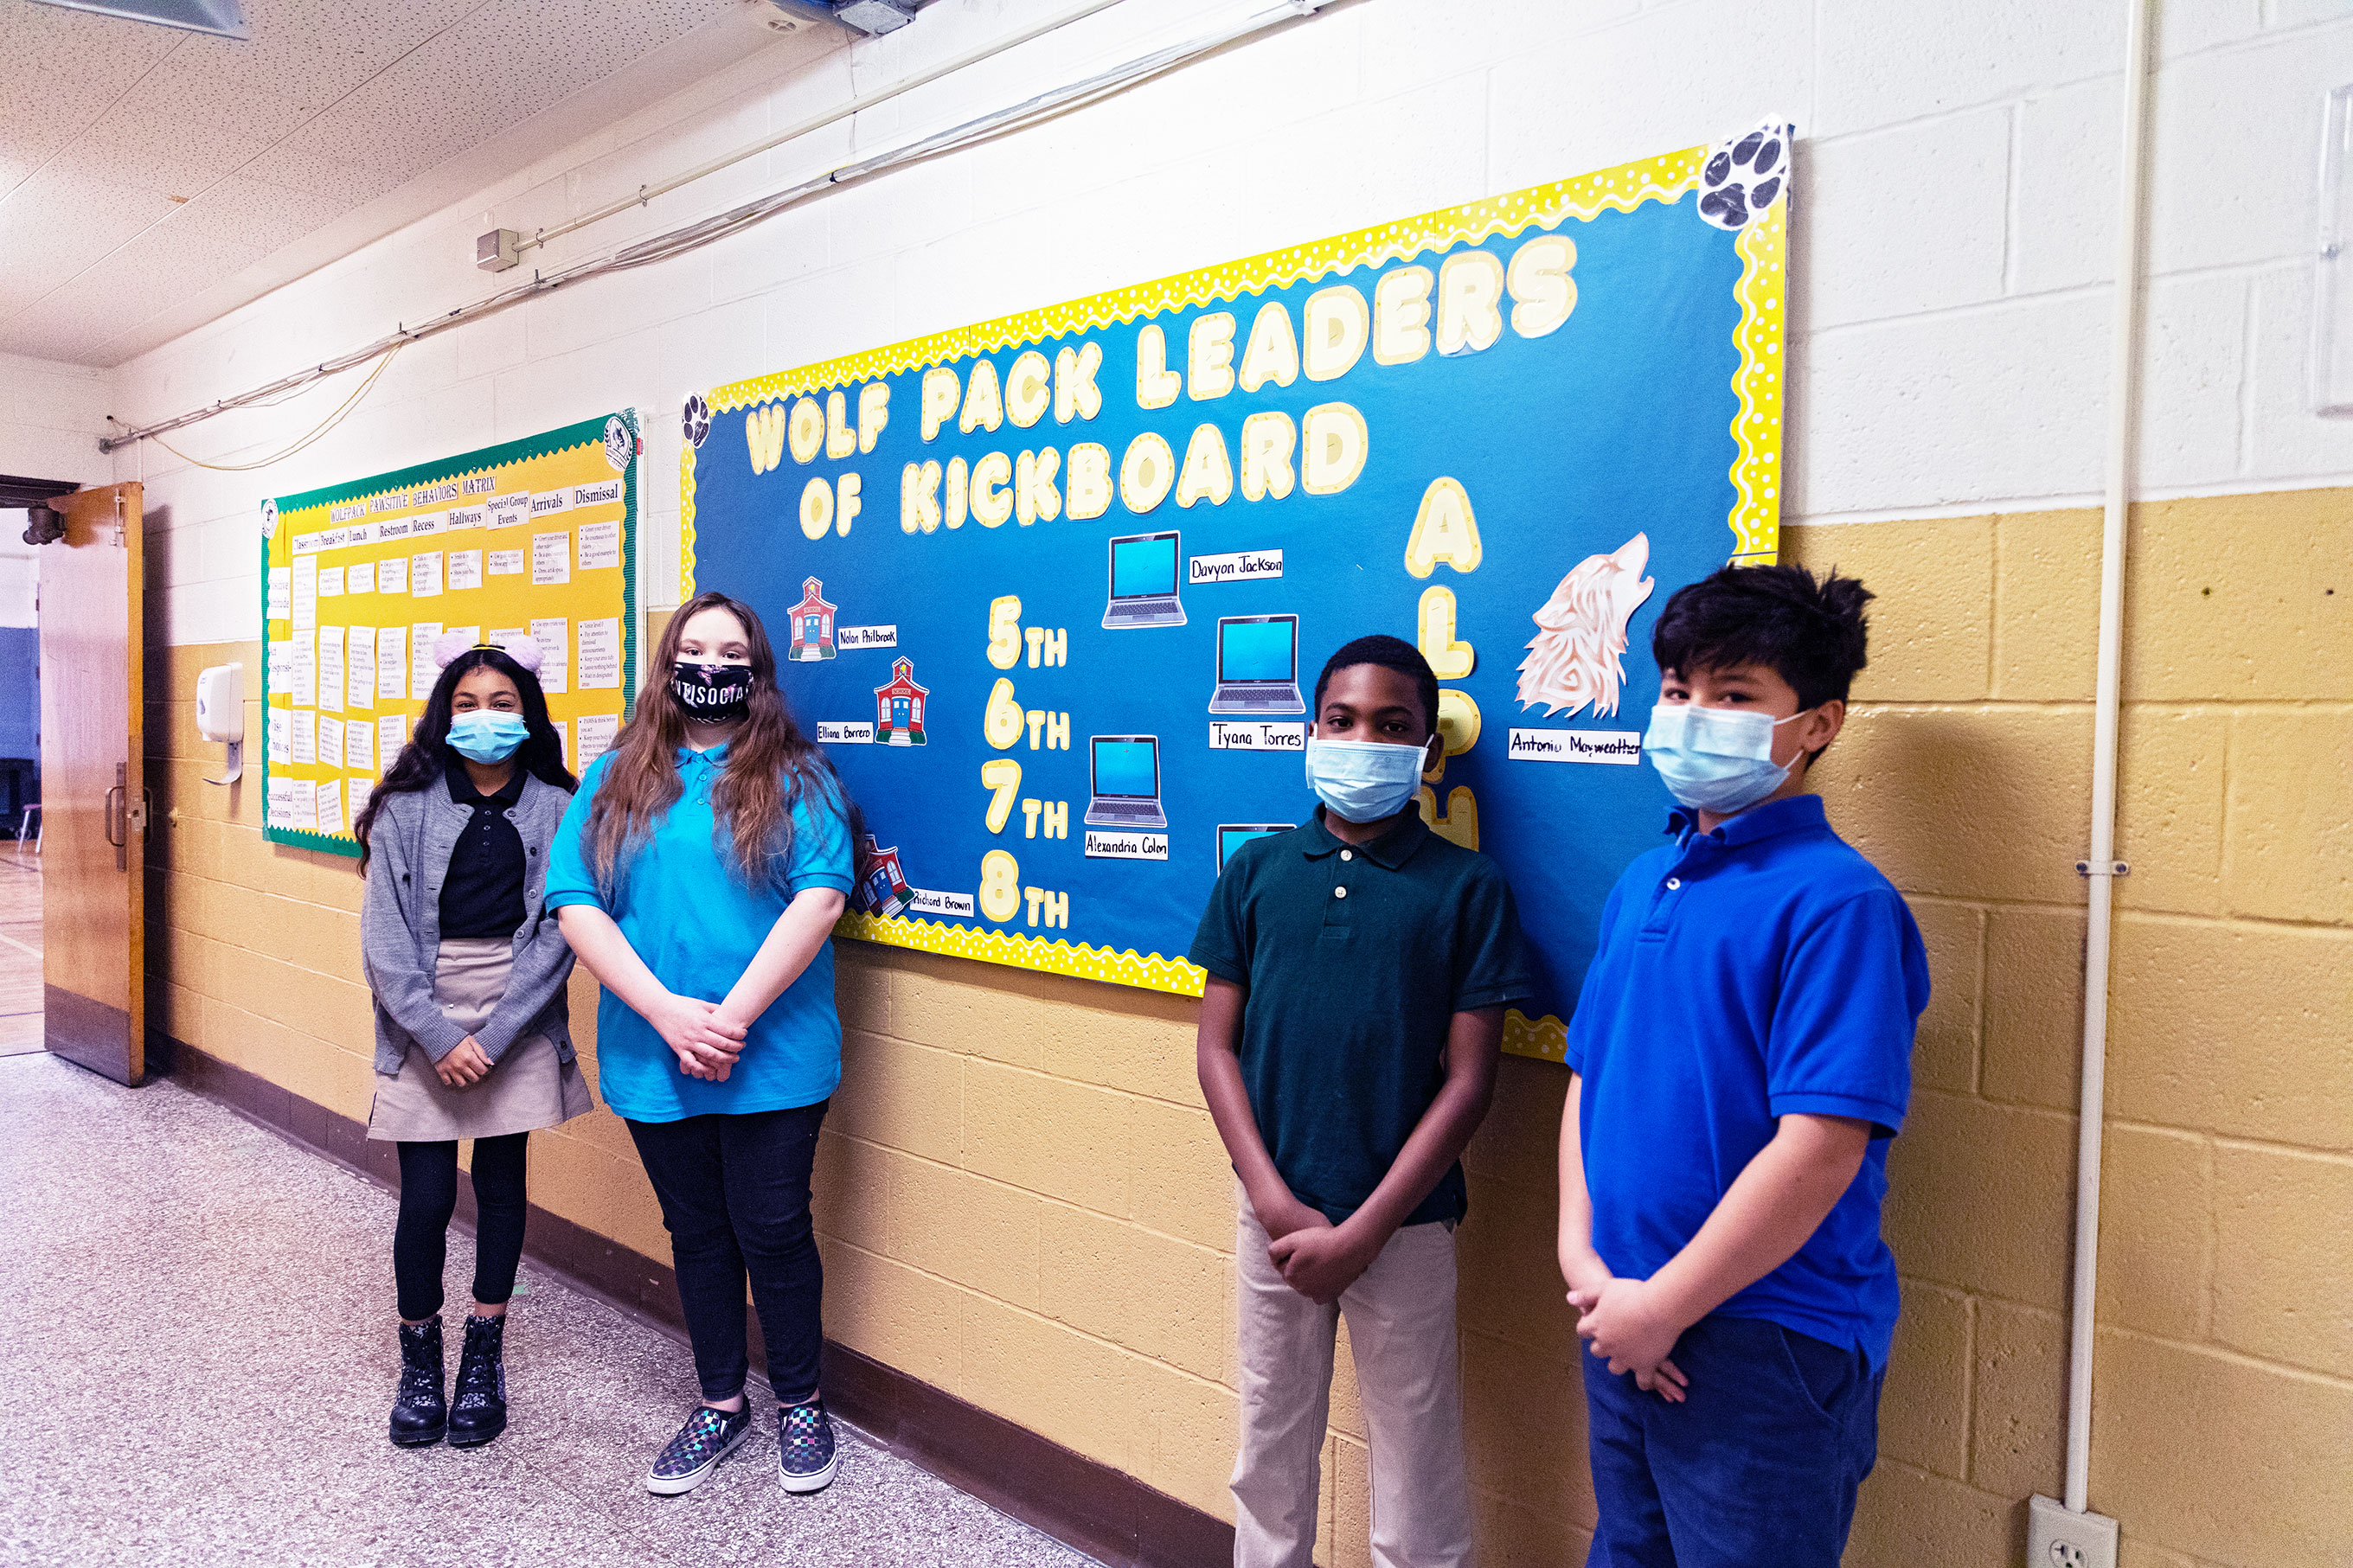 Students standing in hallway in front of Wolf Pack Leaders bulletin board.